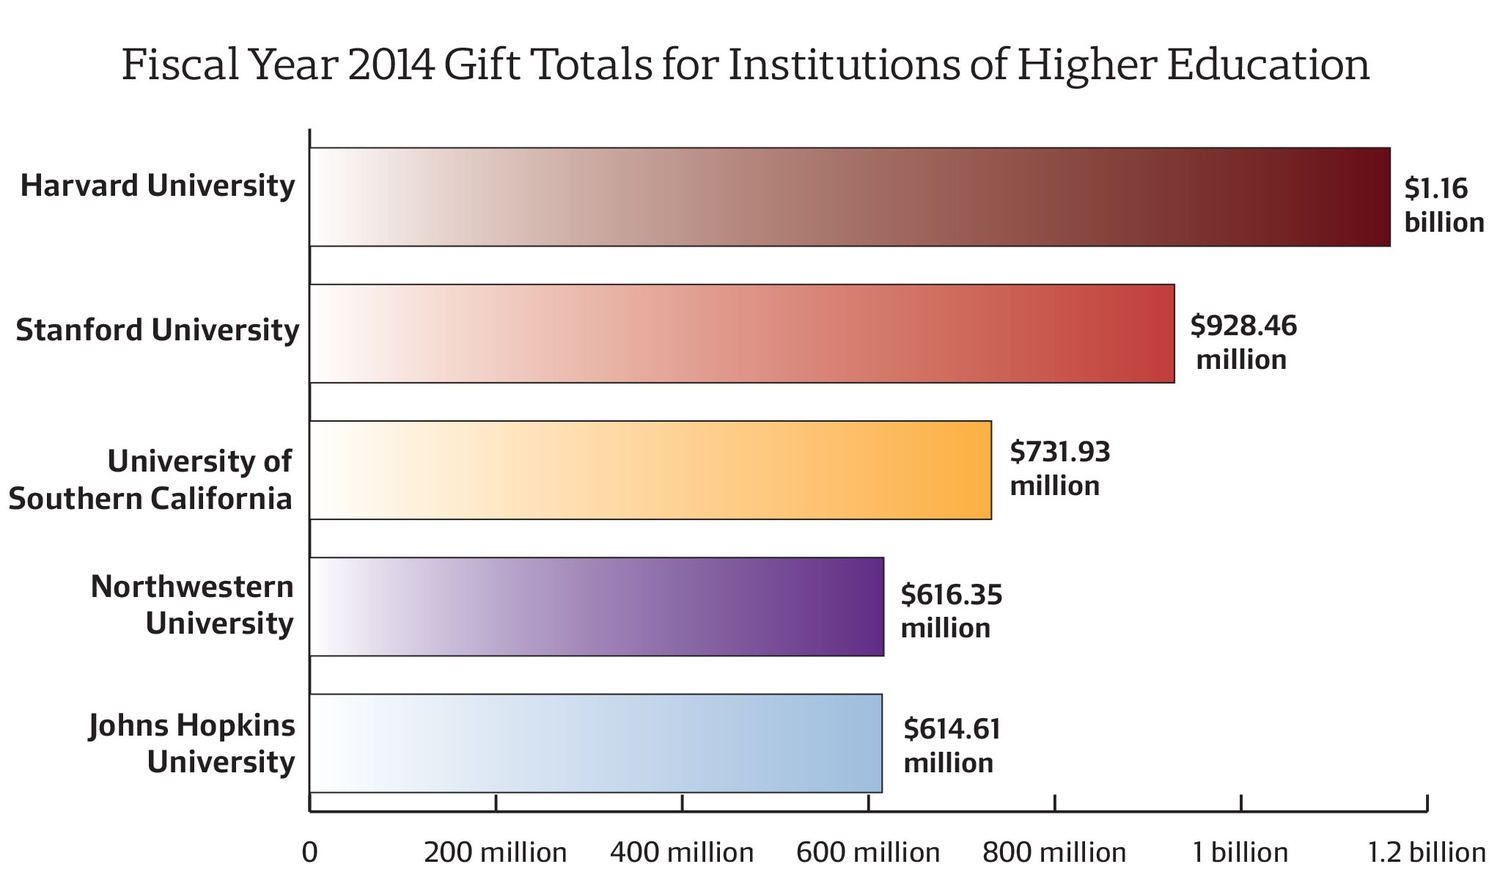 FY 2014 Gifts